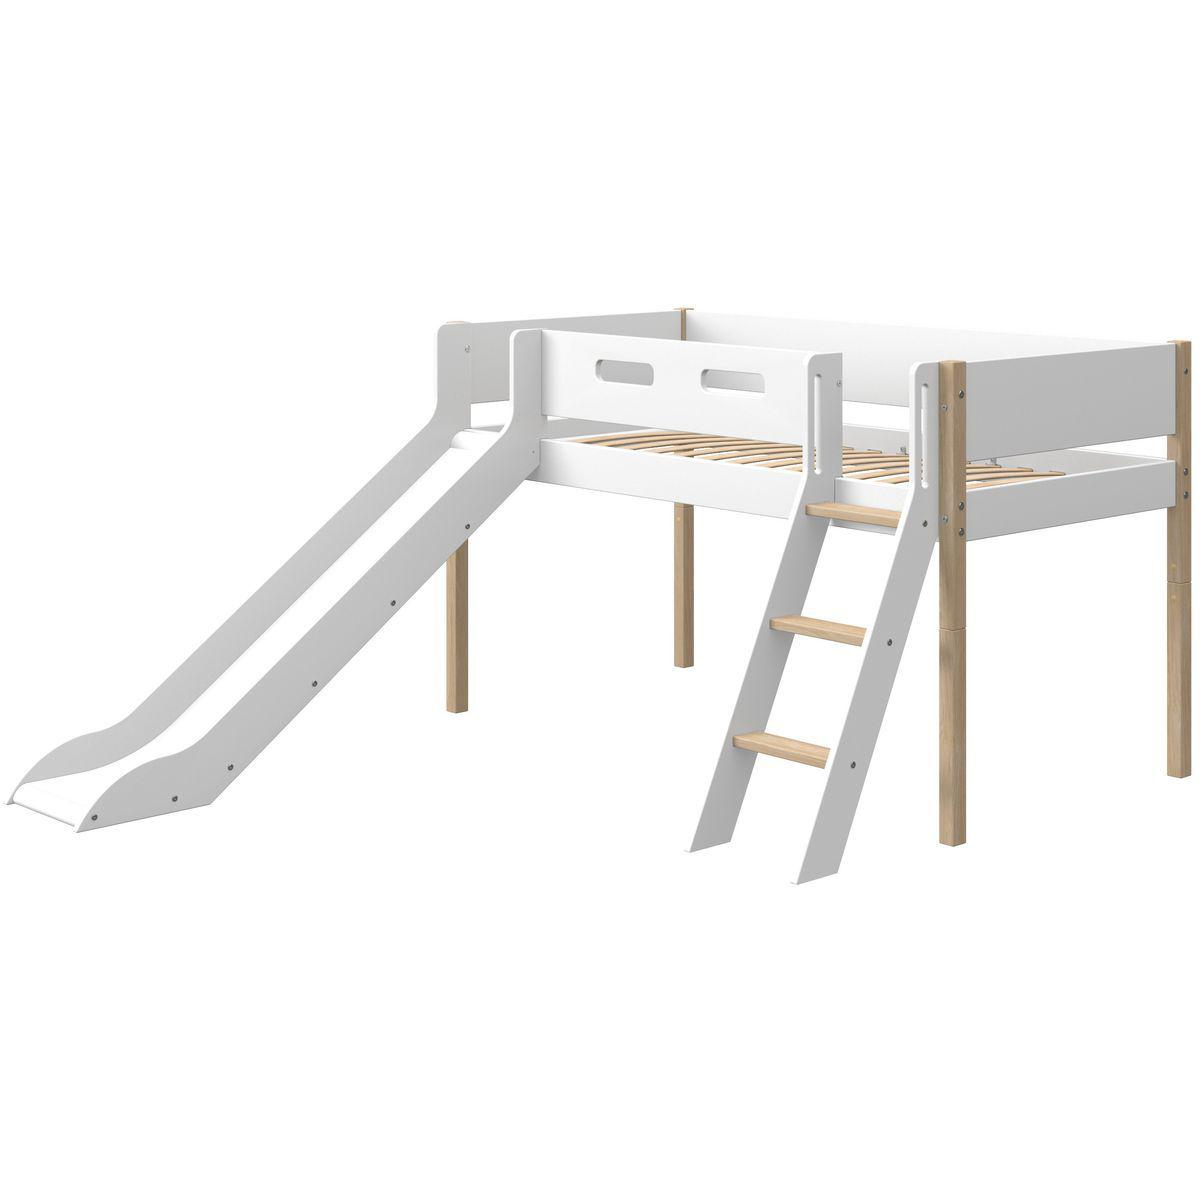 Cama media alta 90x190cm escalera inclinada-tobogán NOR Flexa roble-blanco